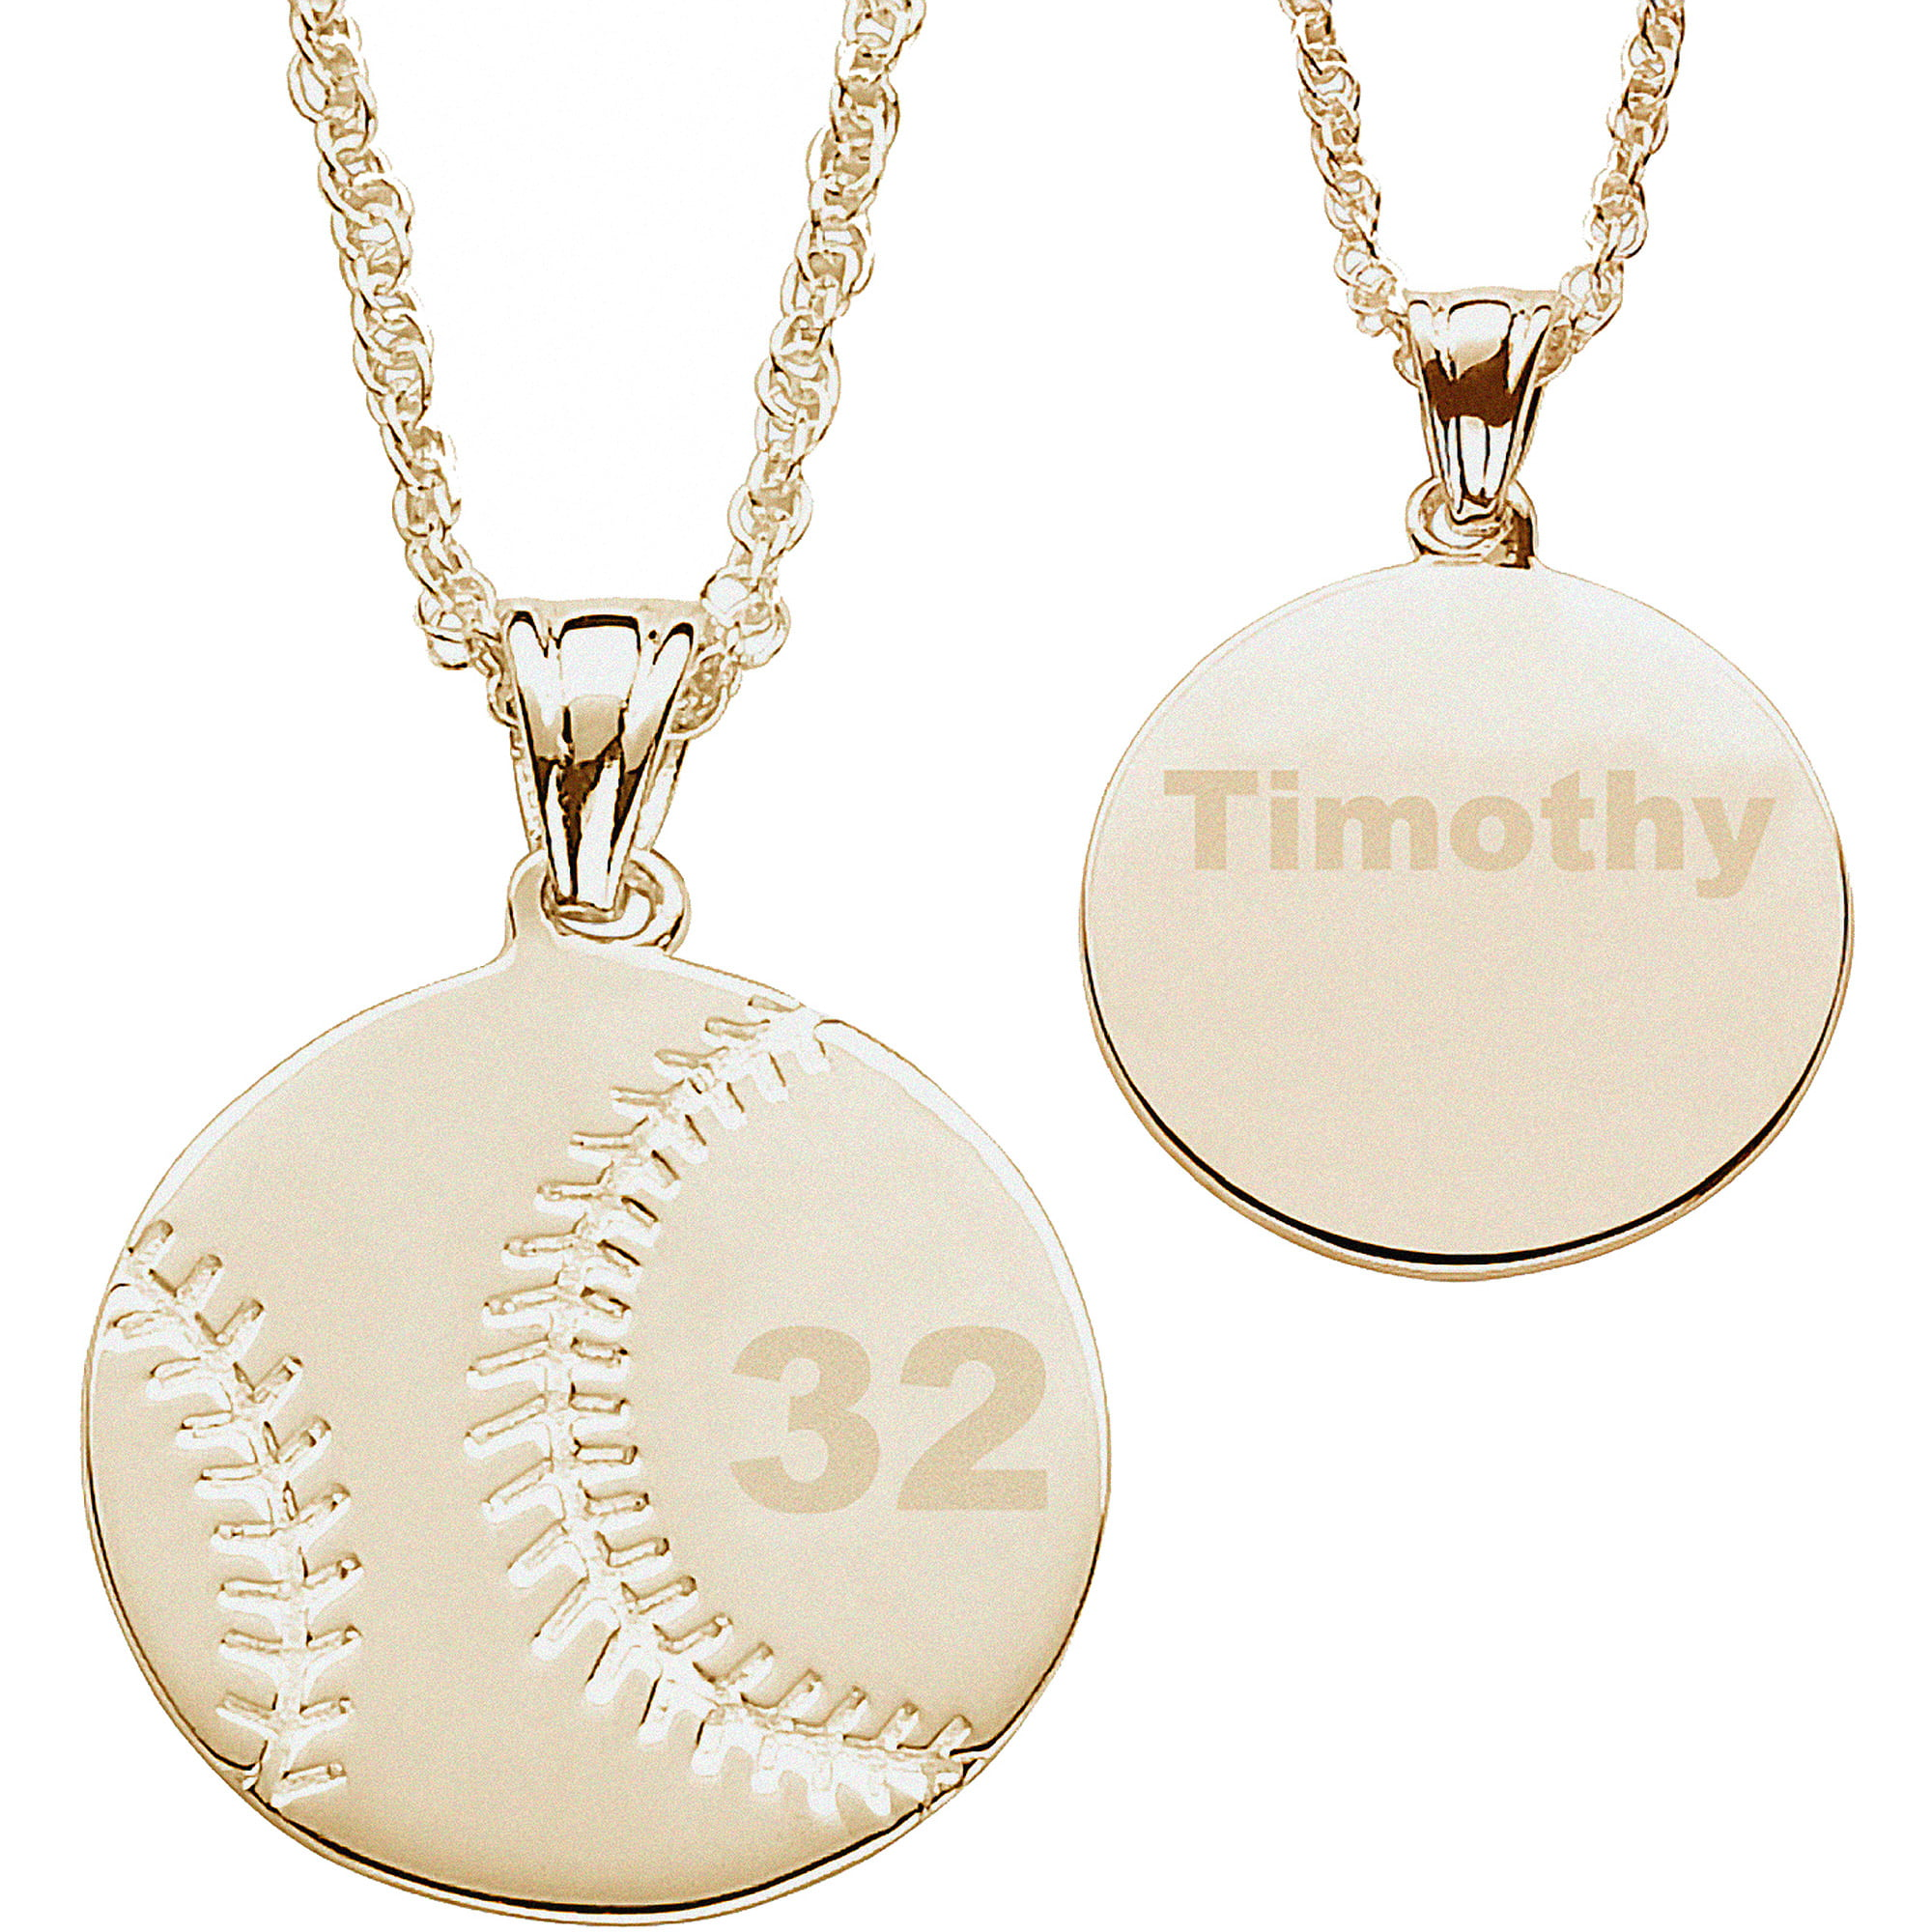 pendant mens chain guys design gold best diy pearl baseball for necklace miracle innovation with rope silver